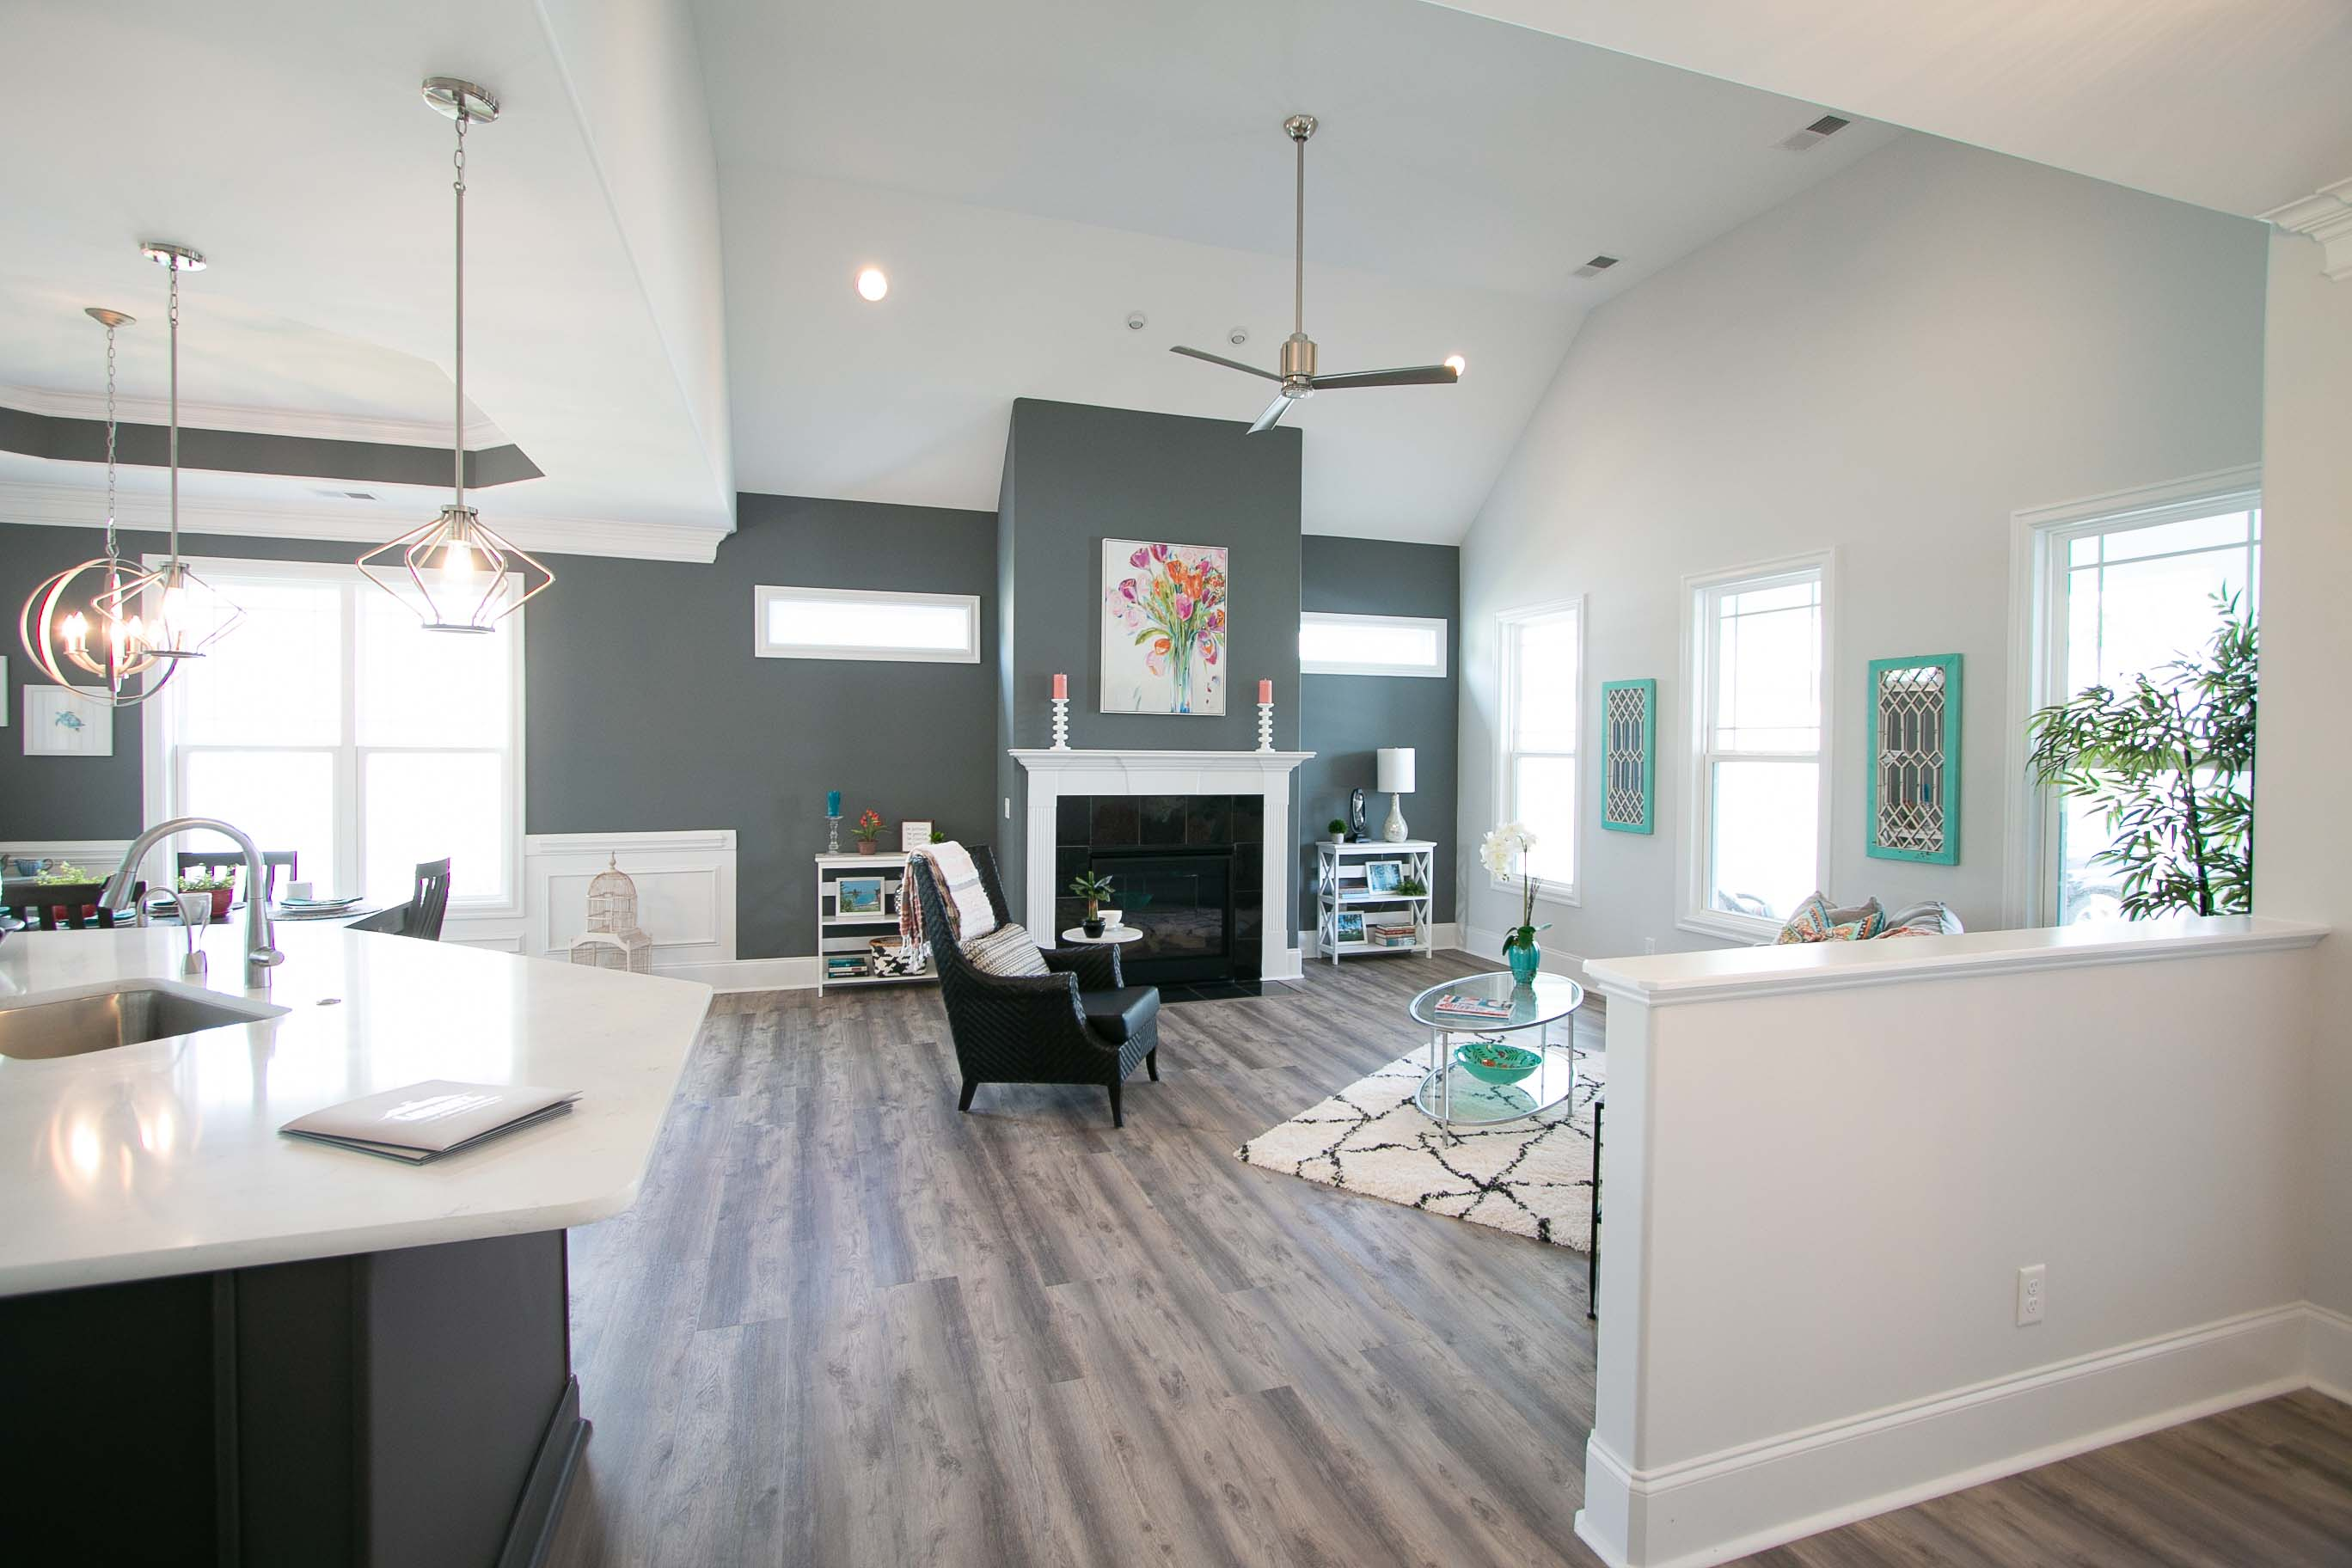 New Homes Compass Pointe Leland